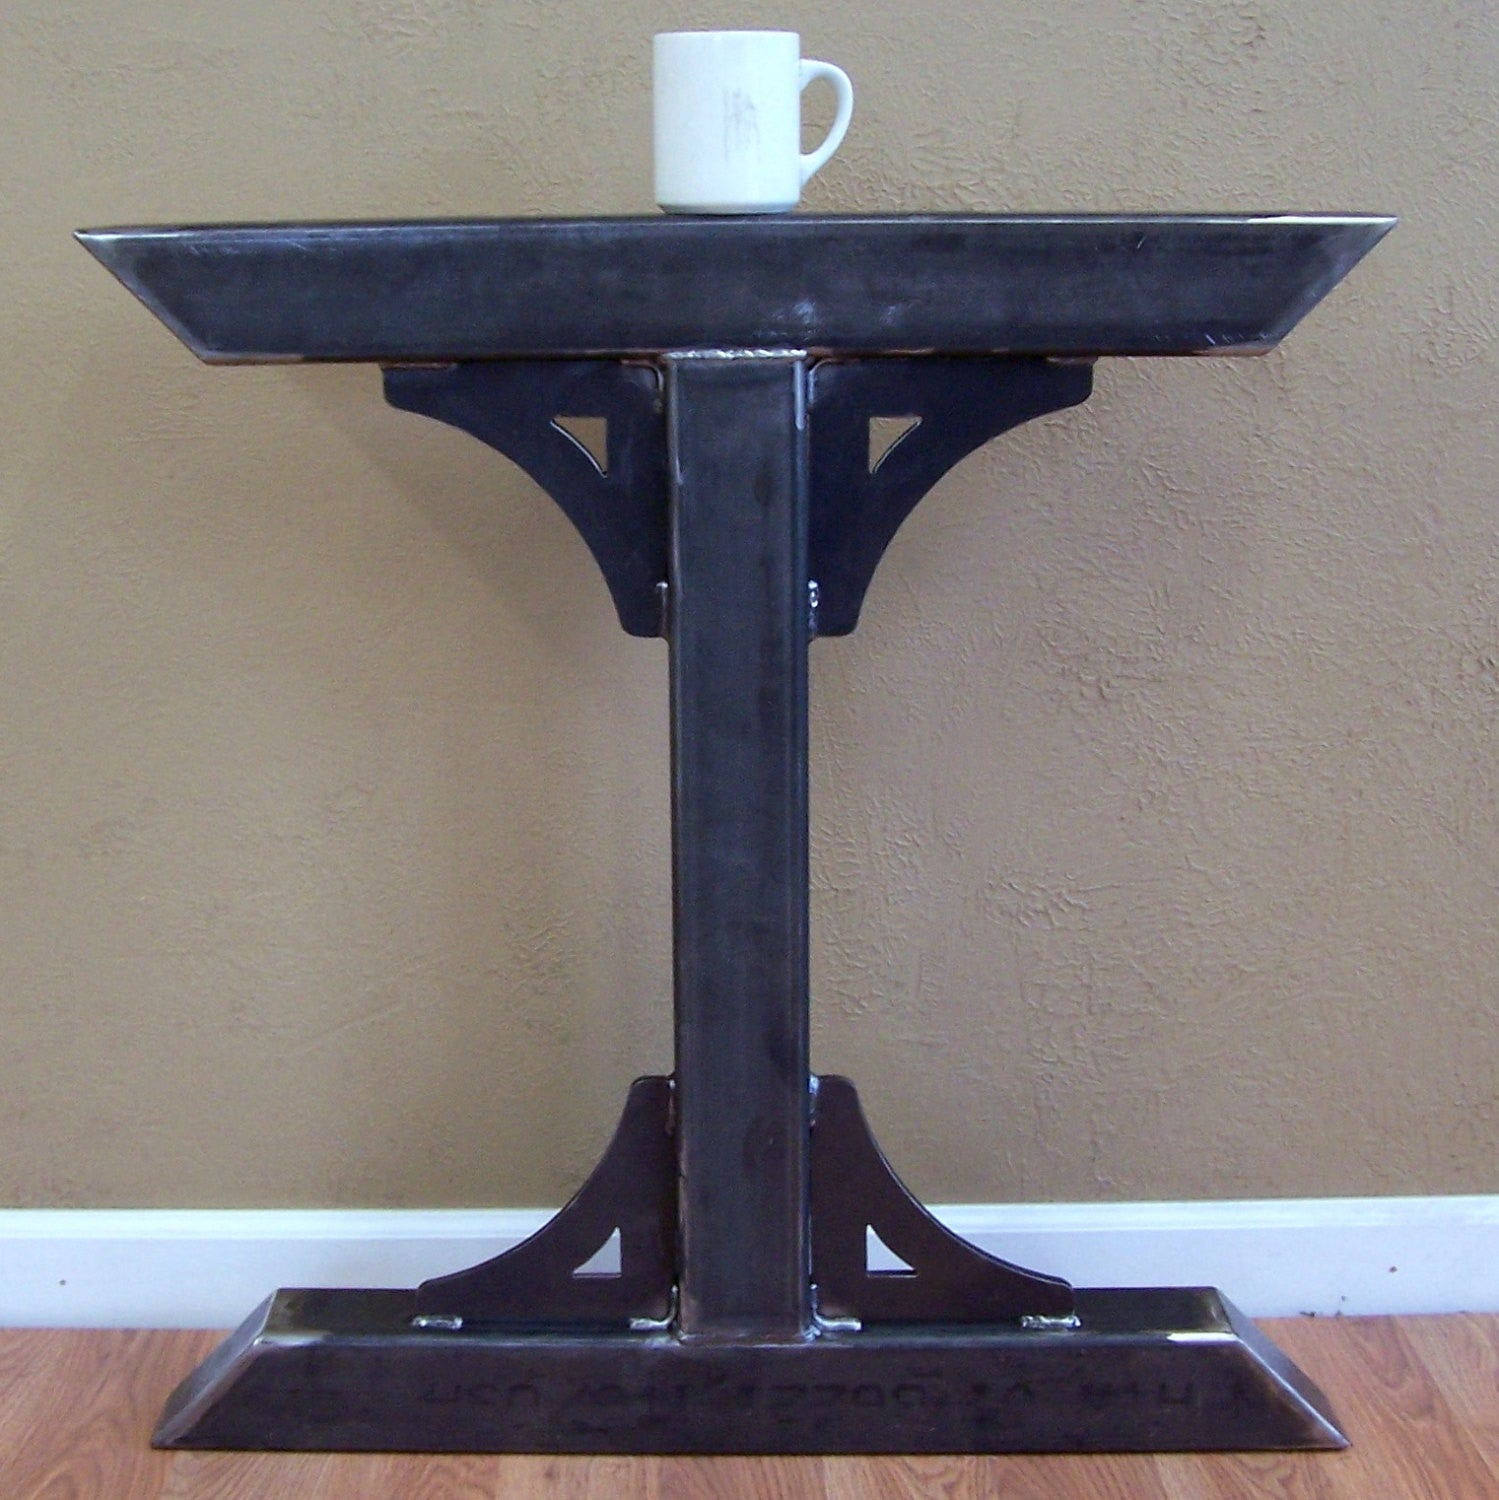 ... Industrial Factory Style Heavy Duty Steel Tube Legs Dining Table  Pedestal Base Image 2